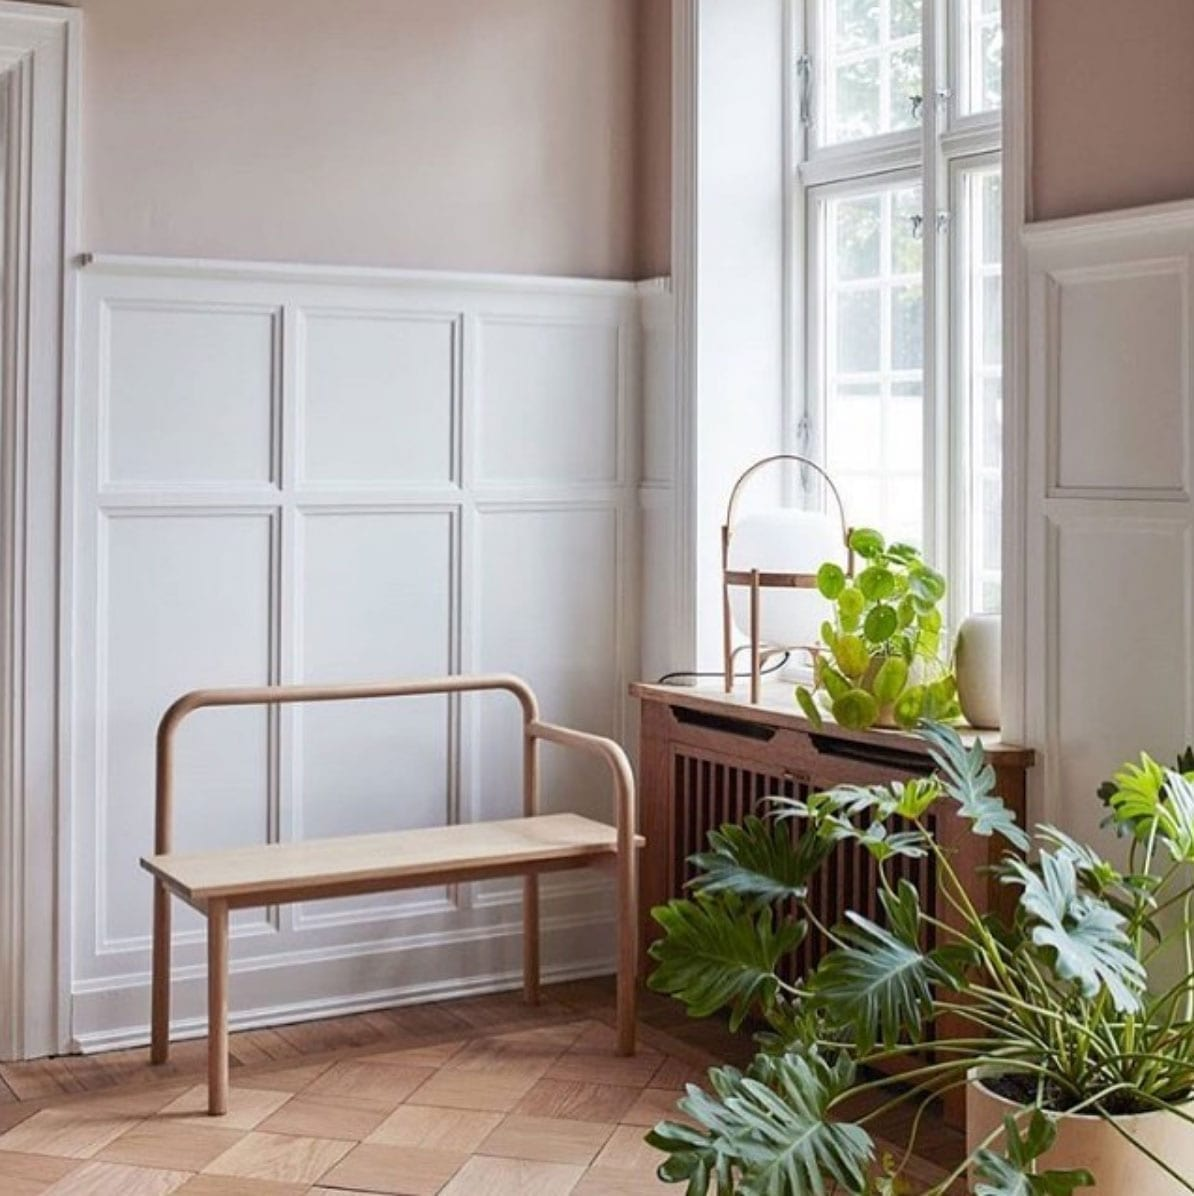 Elle Decoration Dk Interior Trends For 2019 Interior Design Uk Inspiration